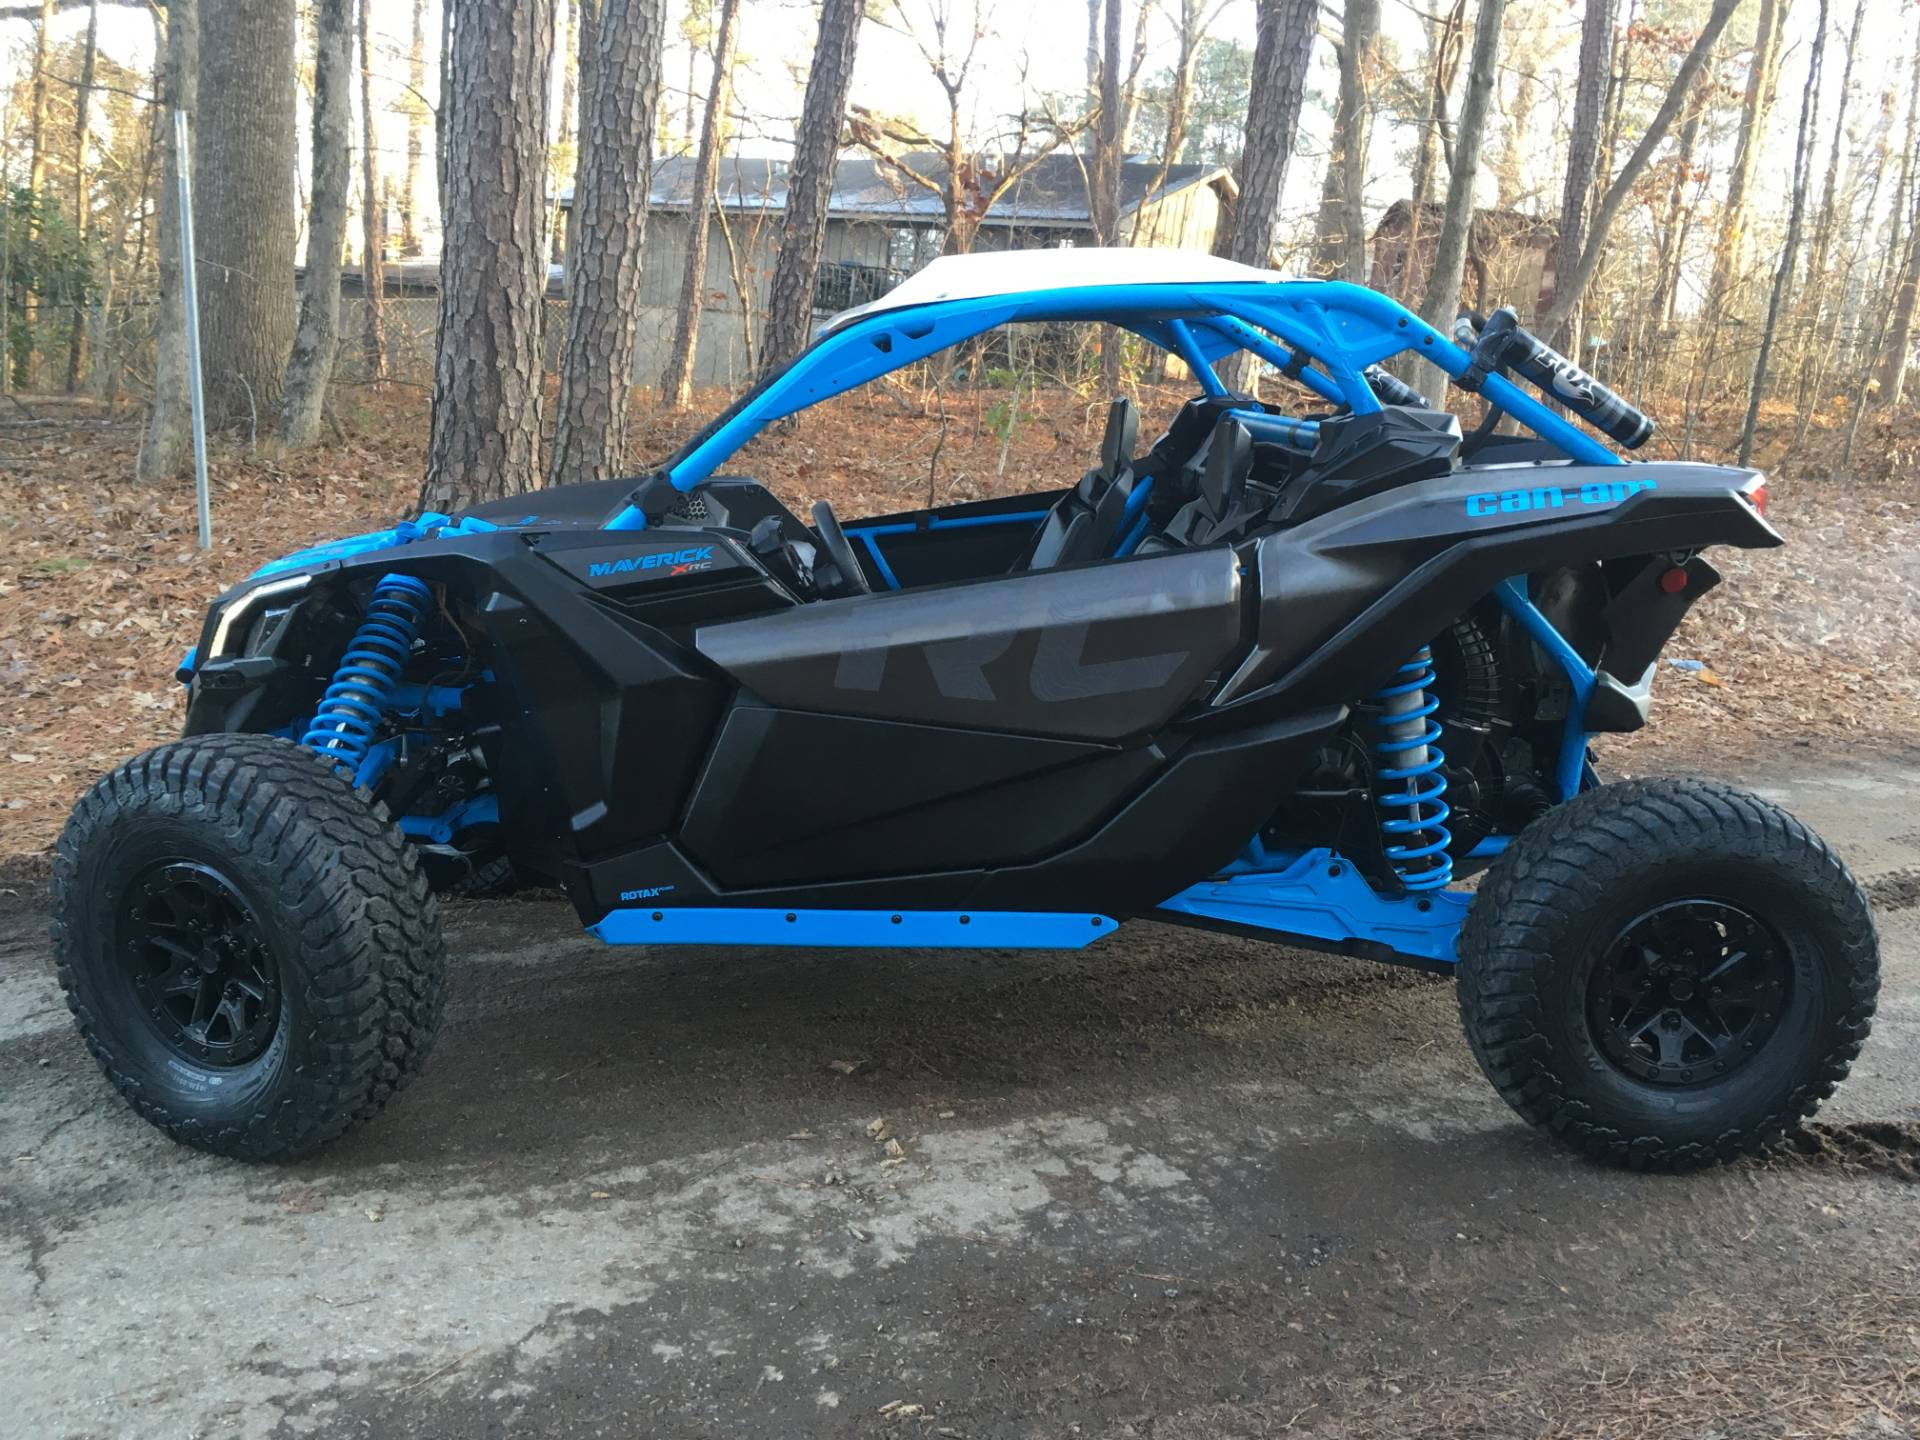 2019 CAN-AM MAVERICK X3 X RC TURBO R in Woodstock, Georgia - Photo 2